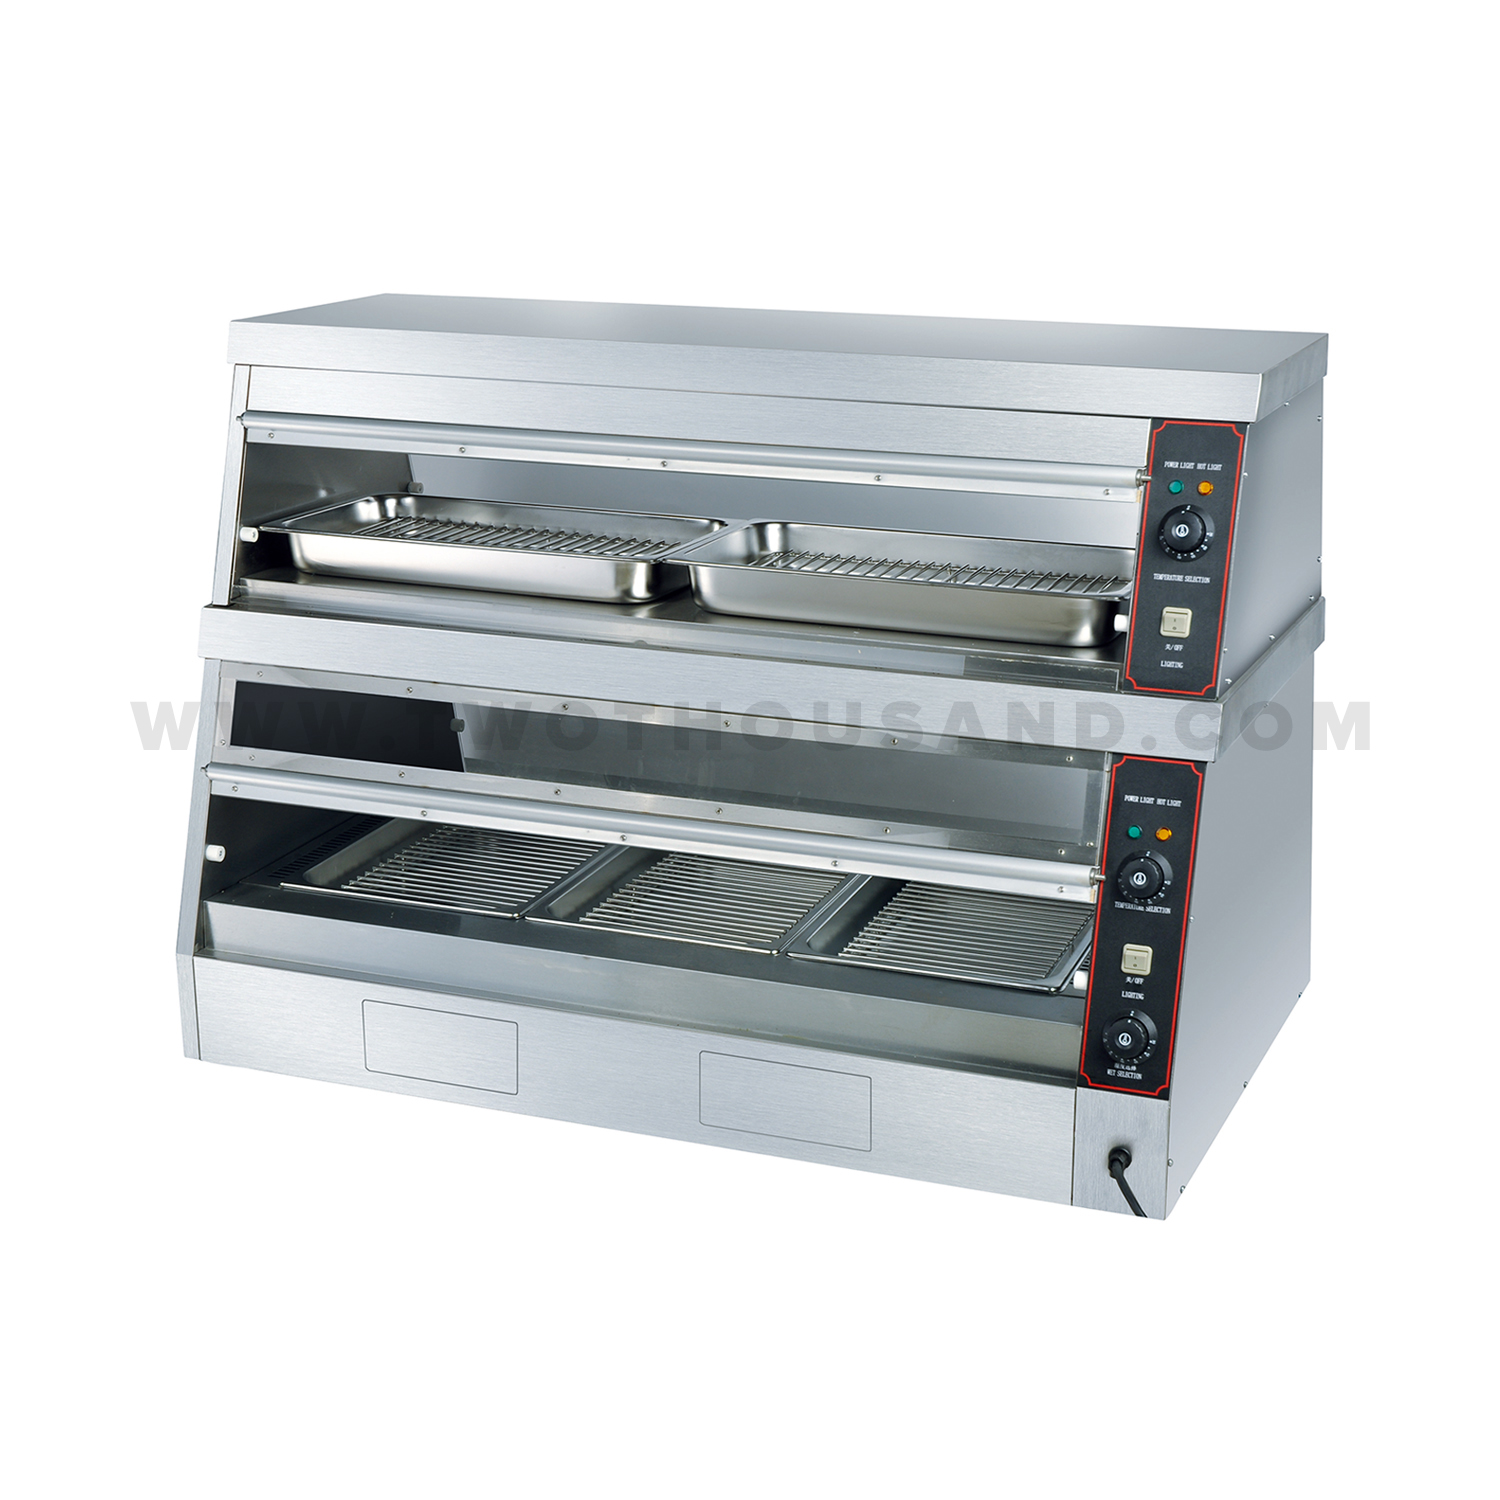 Commercial French Fry Warmer, Commercial French Fry Warmer Suppliers ...